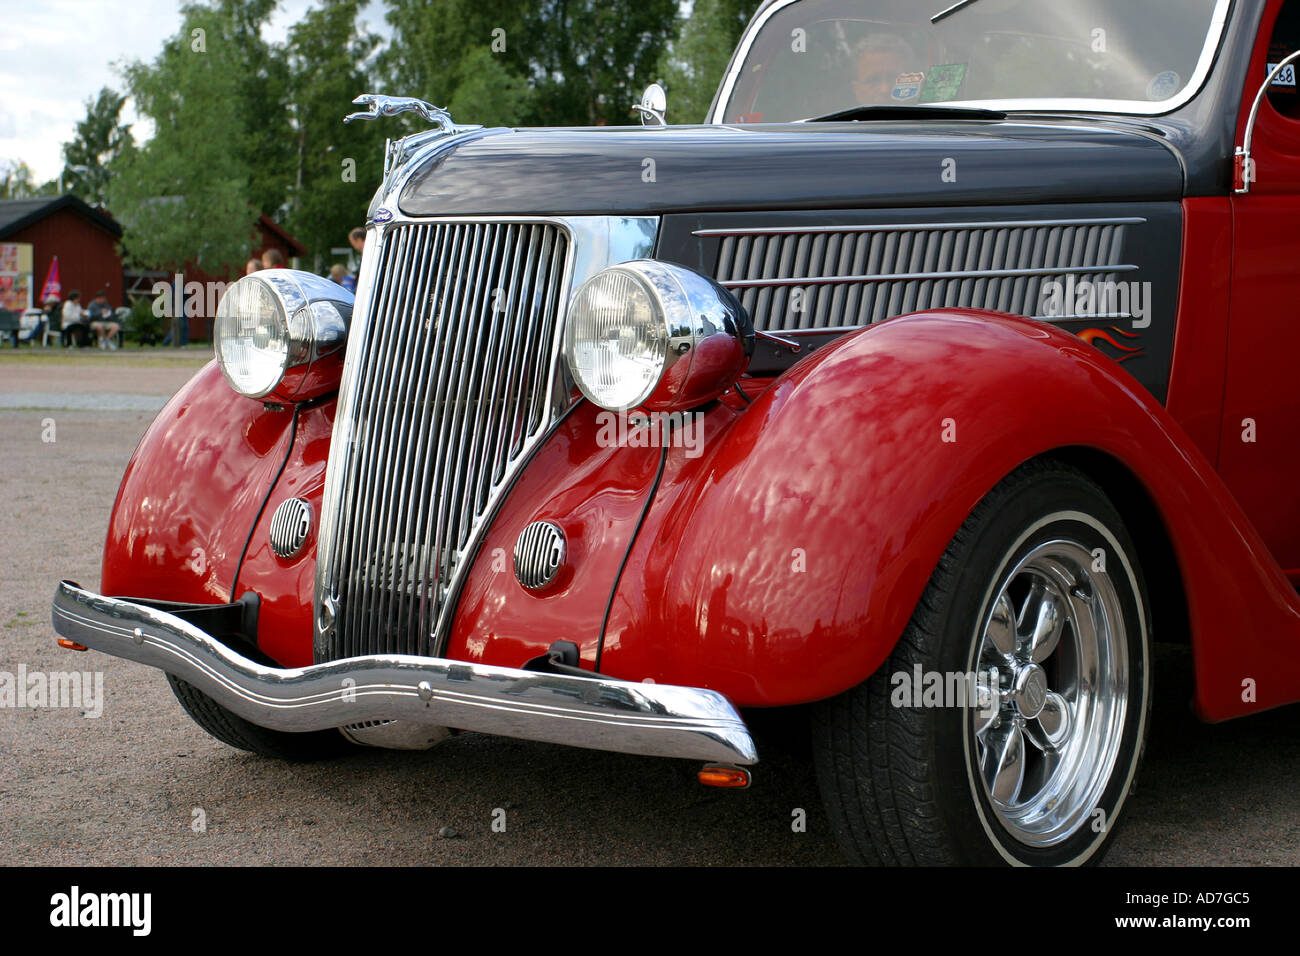 Old Ford Hot Rod Stock Photo: 4351172 - Alamy